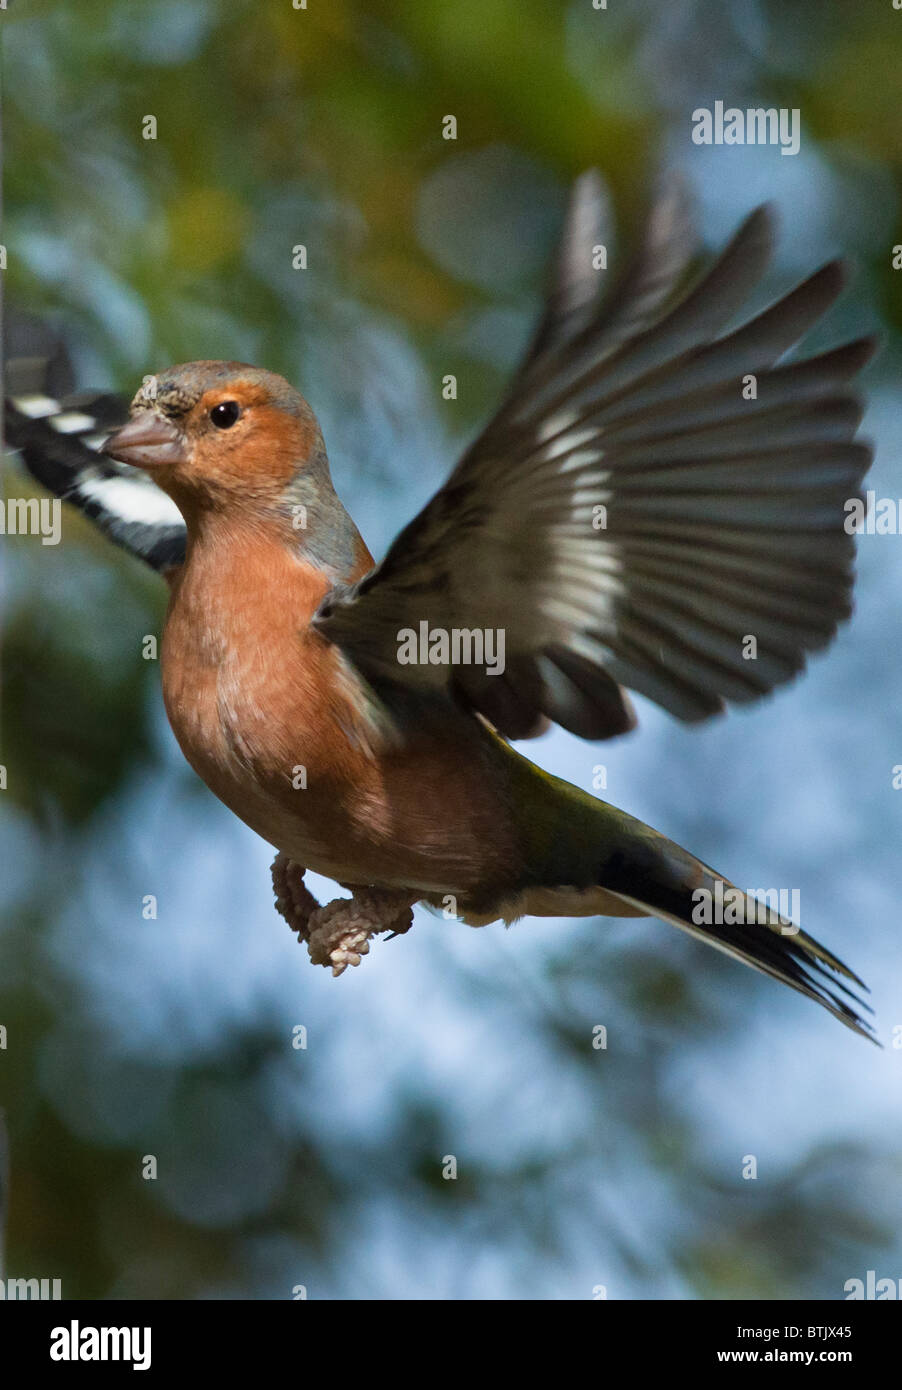 Male Chaffinch in flight - Stock Image